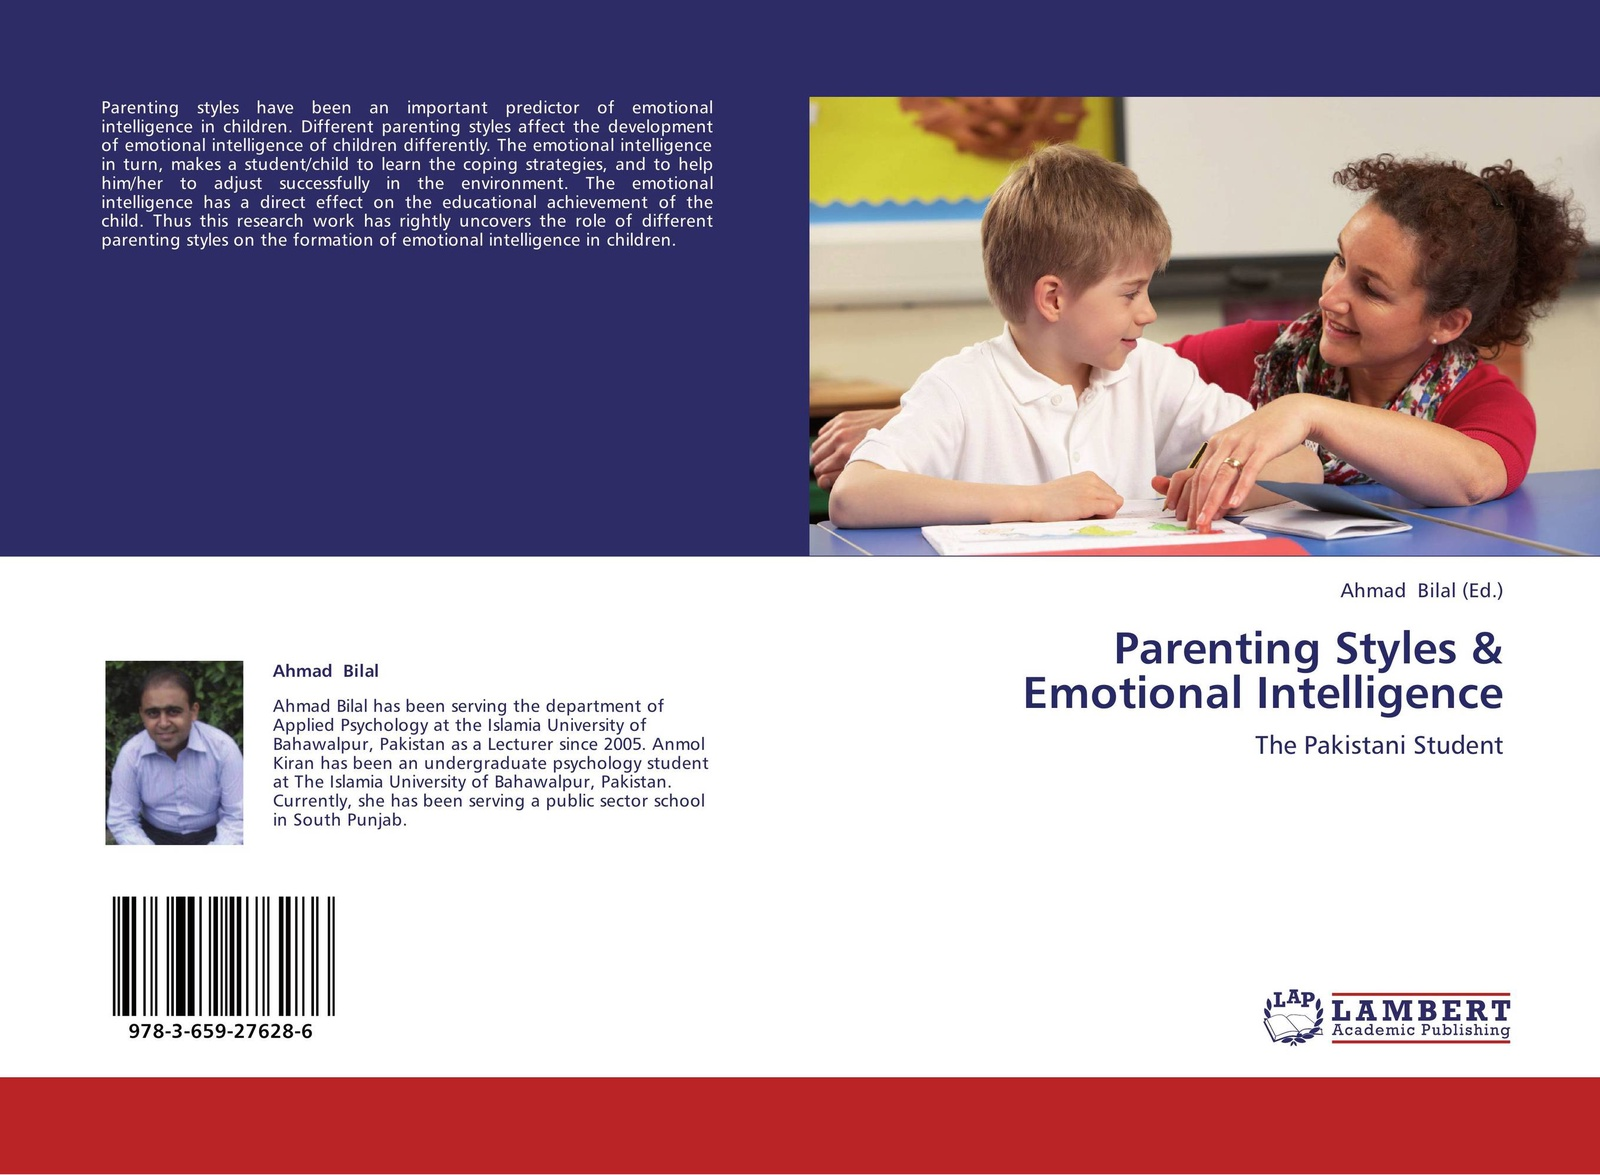 Ahmad Bilal Parenting Styles & Emotional Intelligence michael e lamb the role of the father in child development